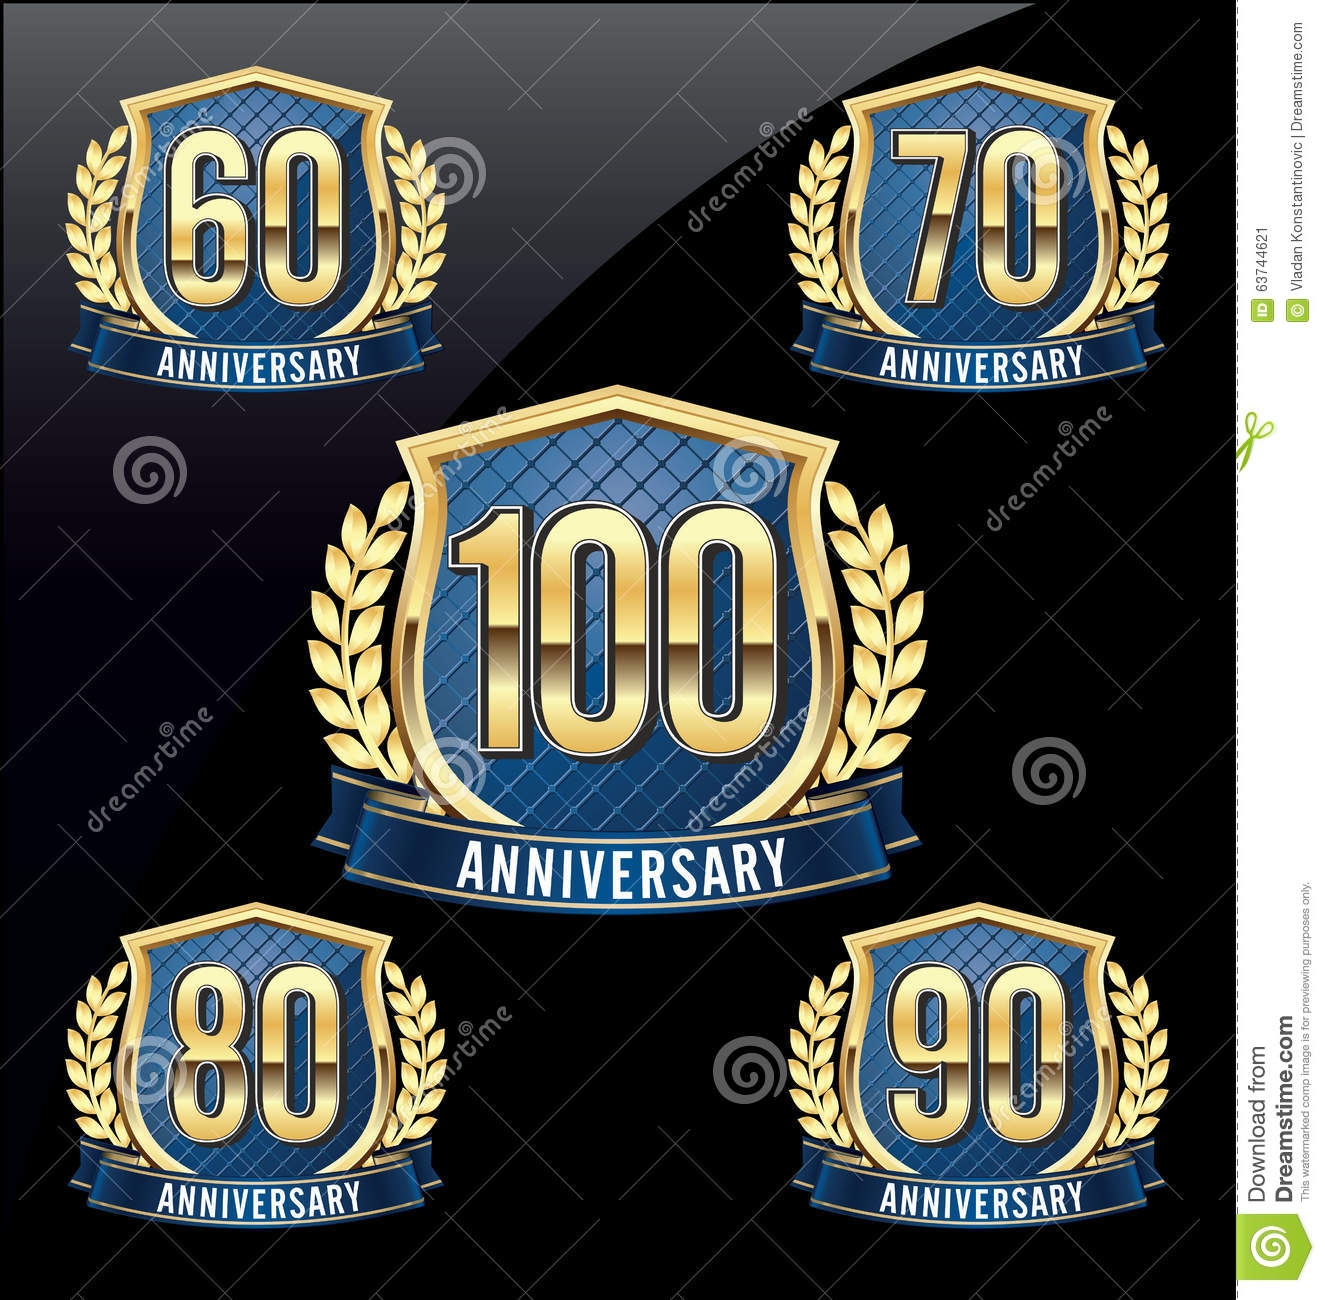 Anniversary Badge Gold and Blue 60th, 70th, 80th, 90th, 100th Years